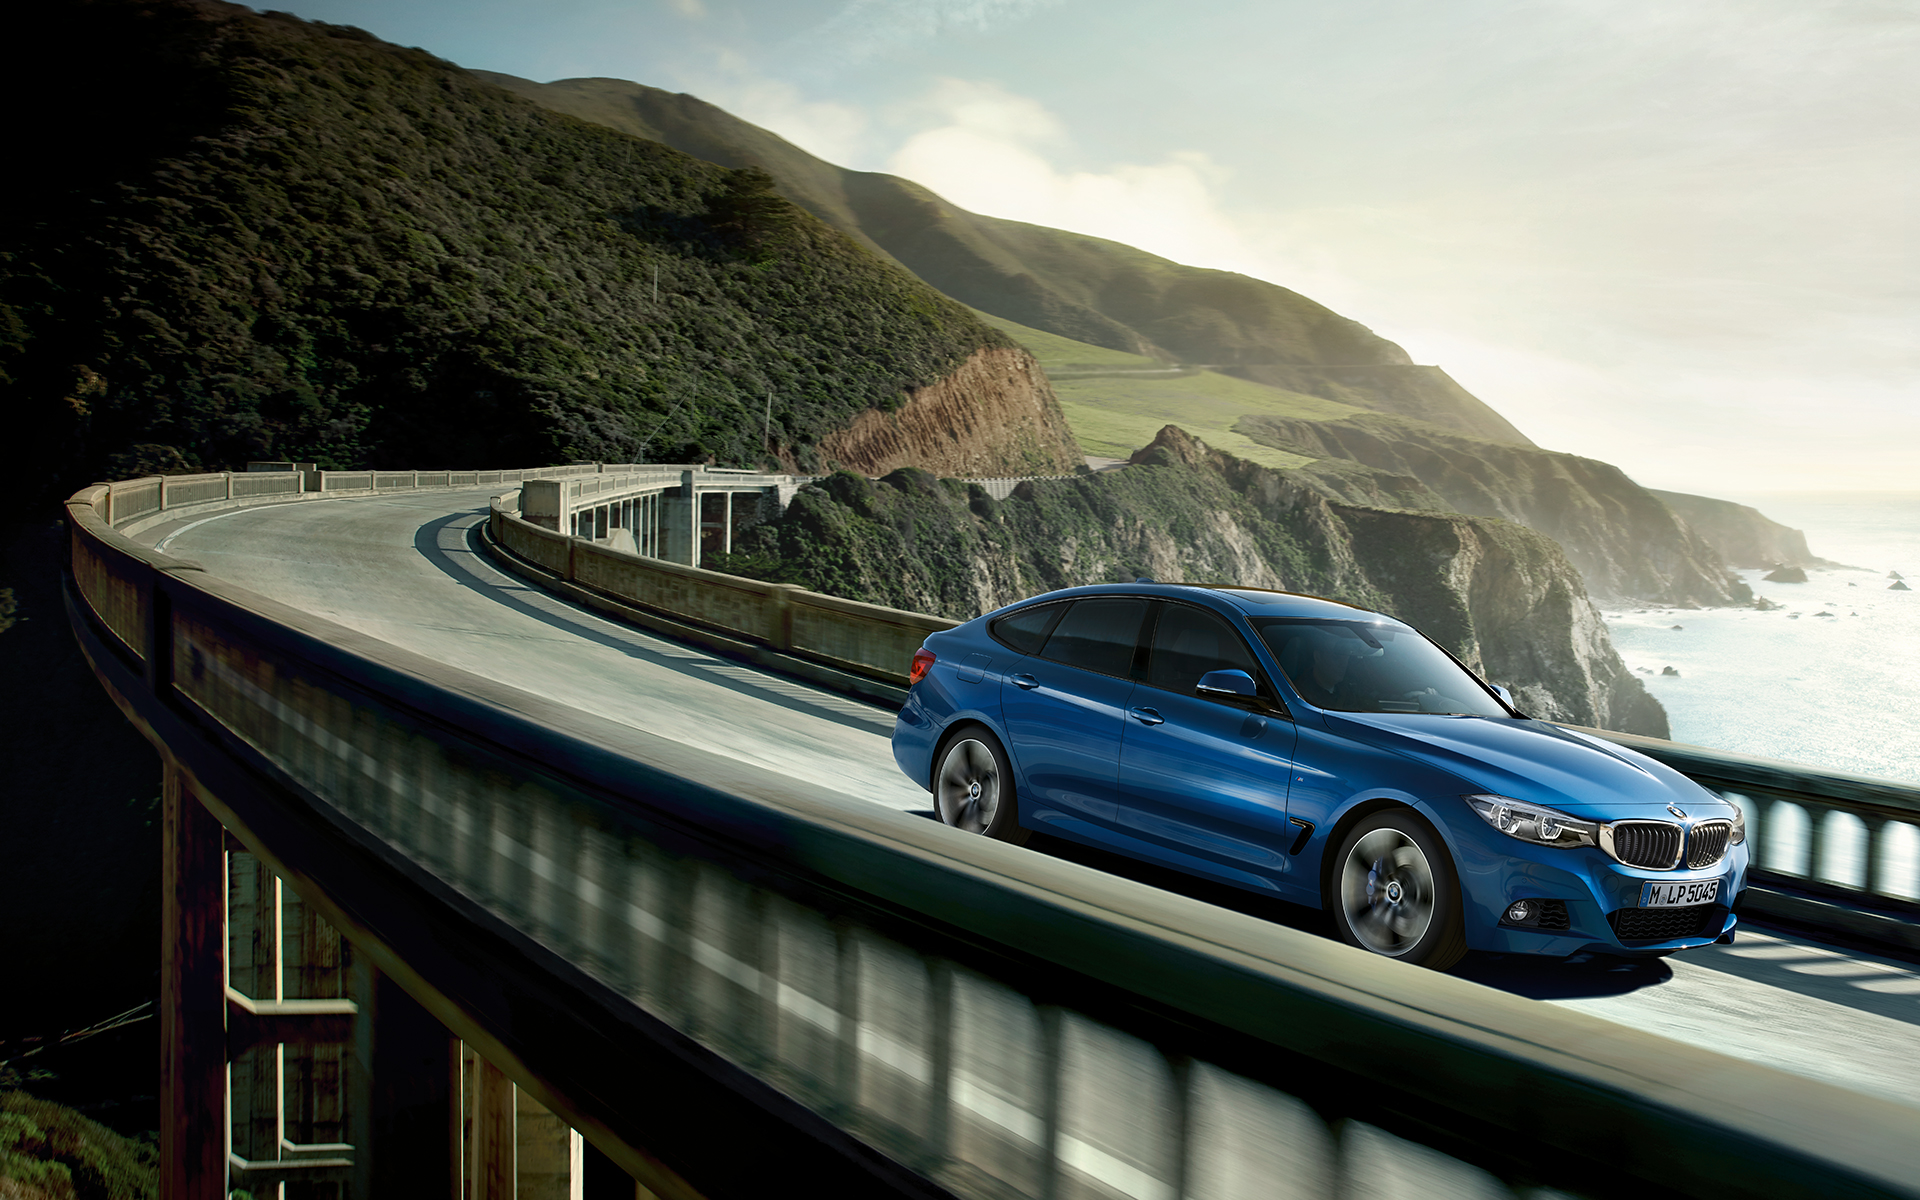 BMW 3 Series Gran Turismo: bright blue car fast driving on the highway bridge.